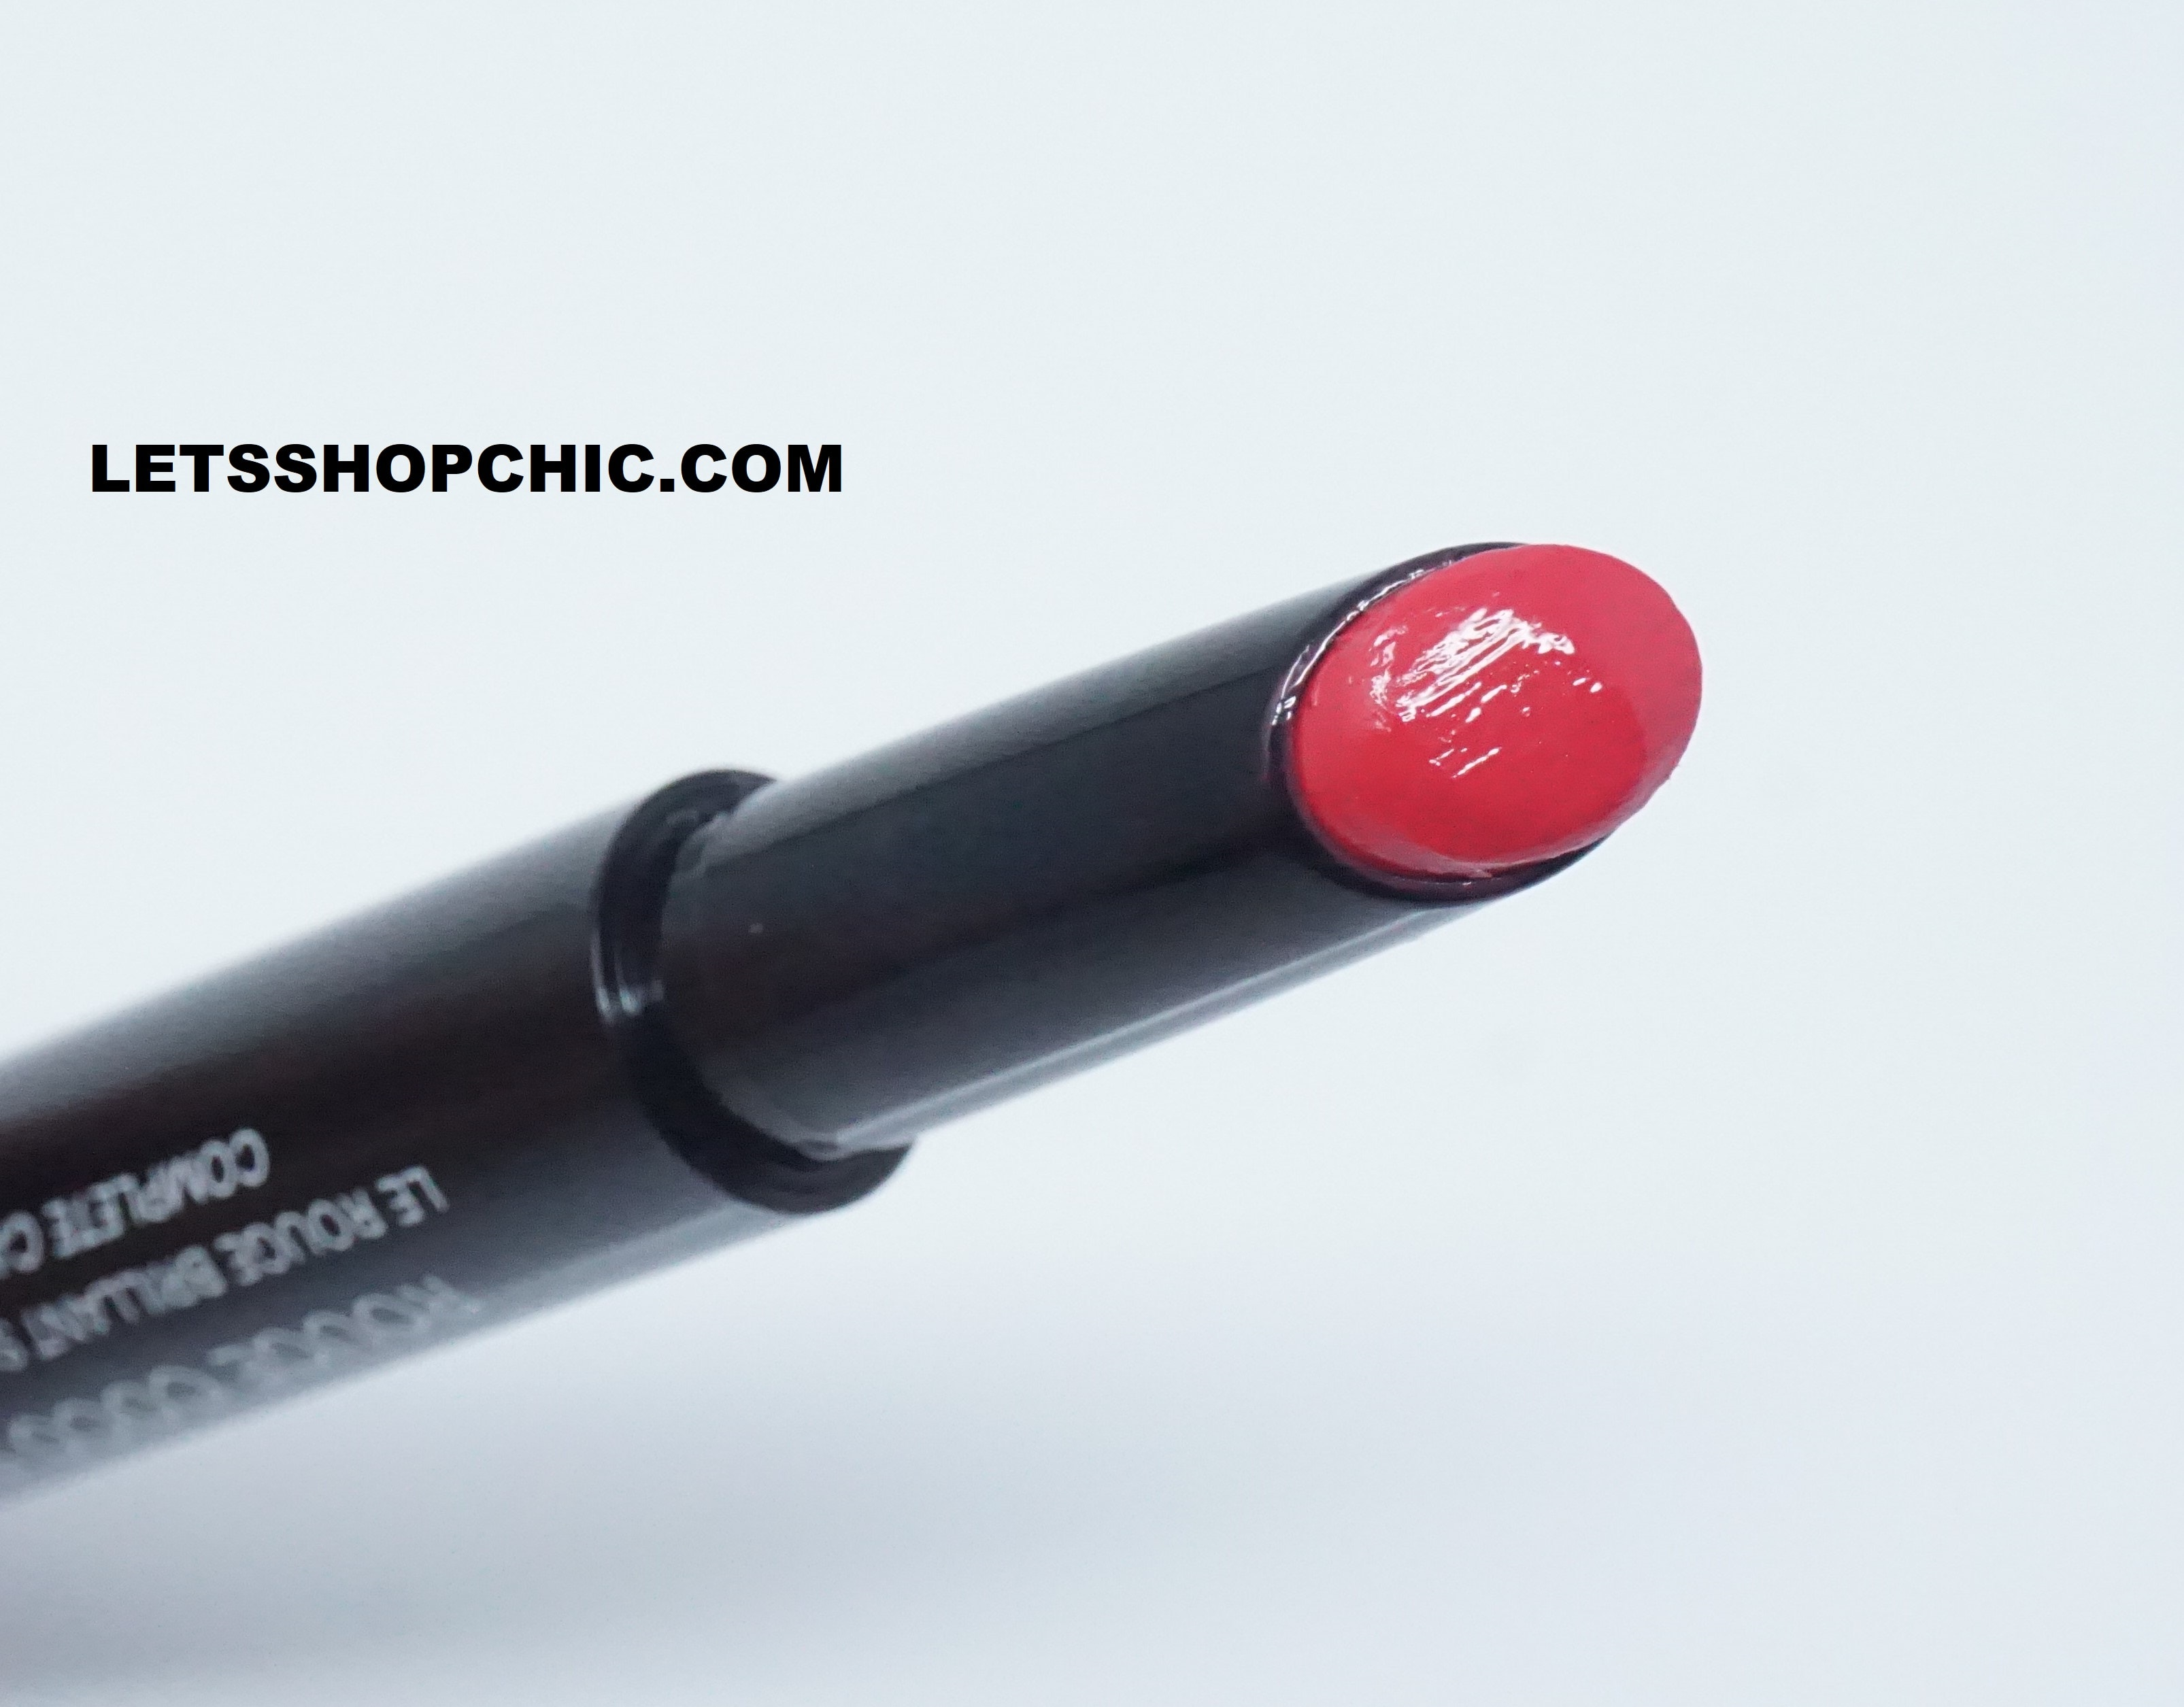 Chanel Rouge Coco Stylo Lipstick 226 Calligraphie shade